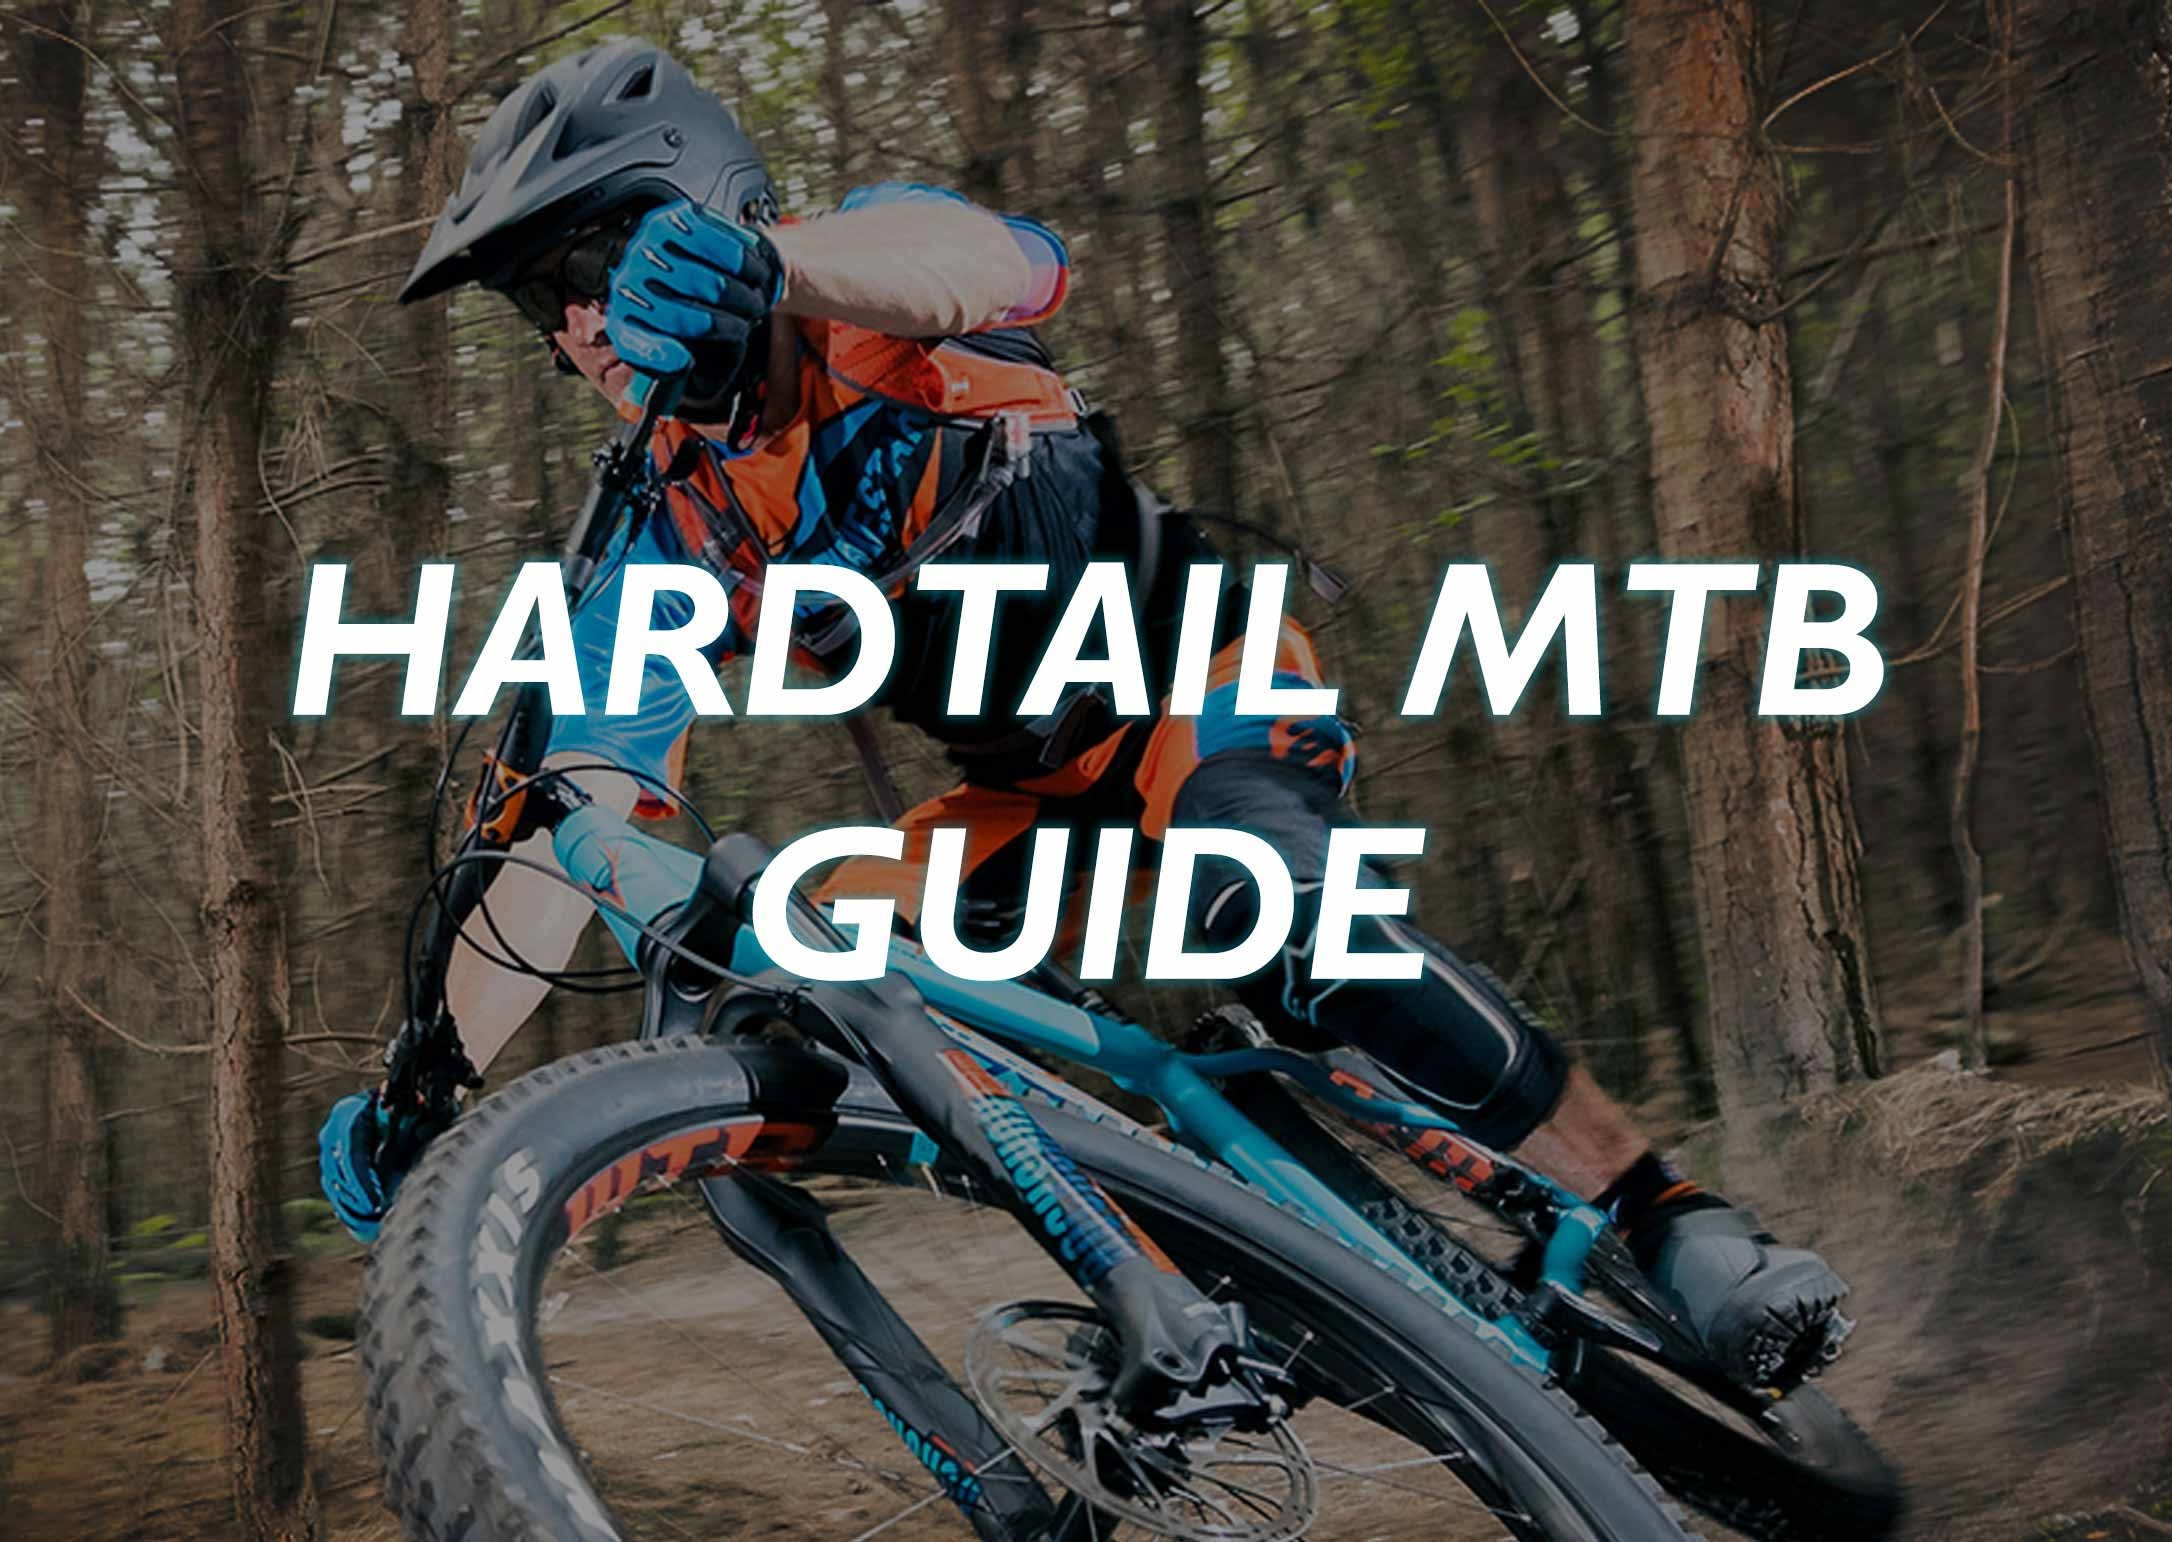 hardtail-mtb-guide-tile